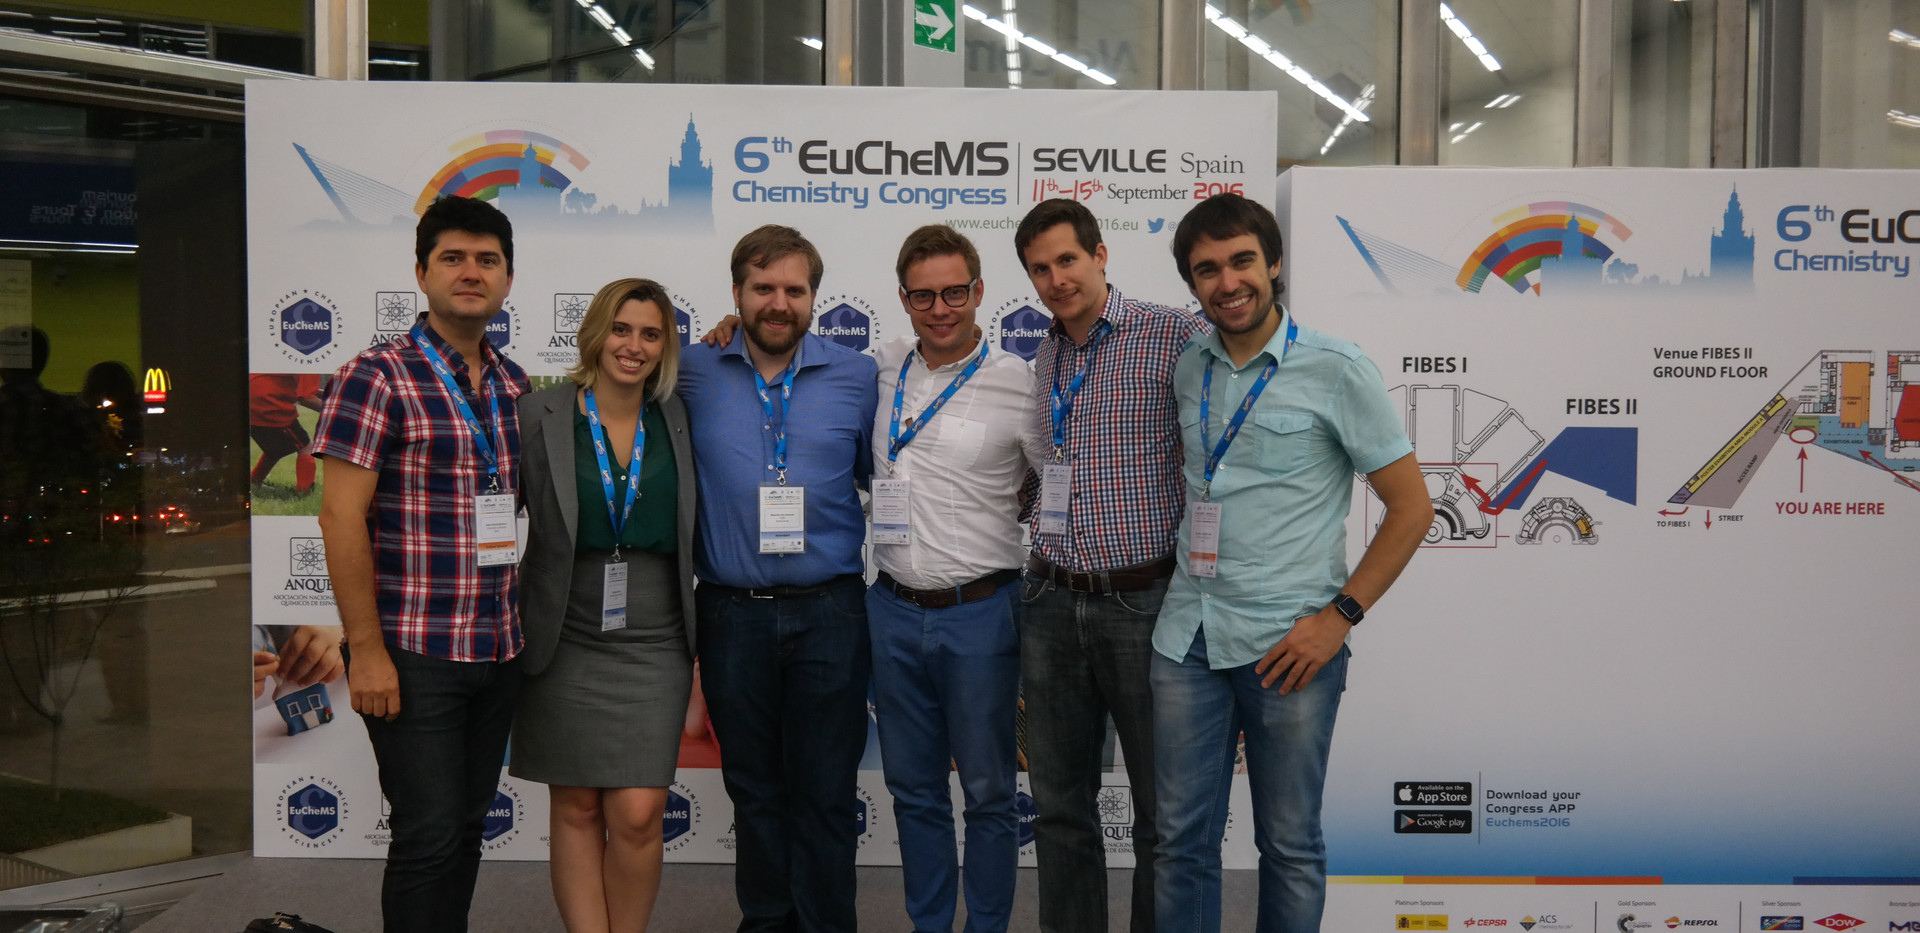 IYCN at EYCN Seville EuChems Conference, 2016